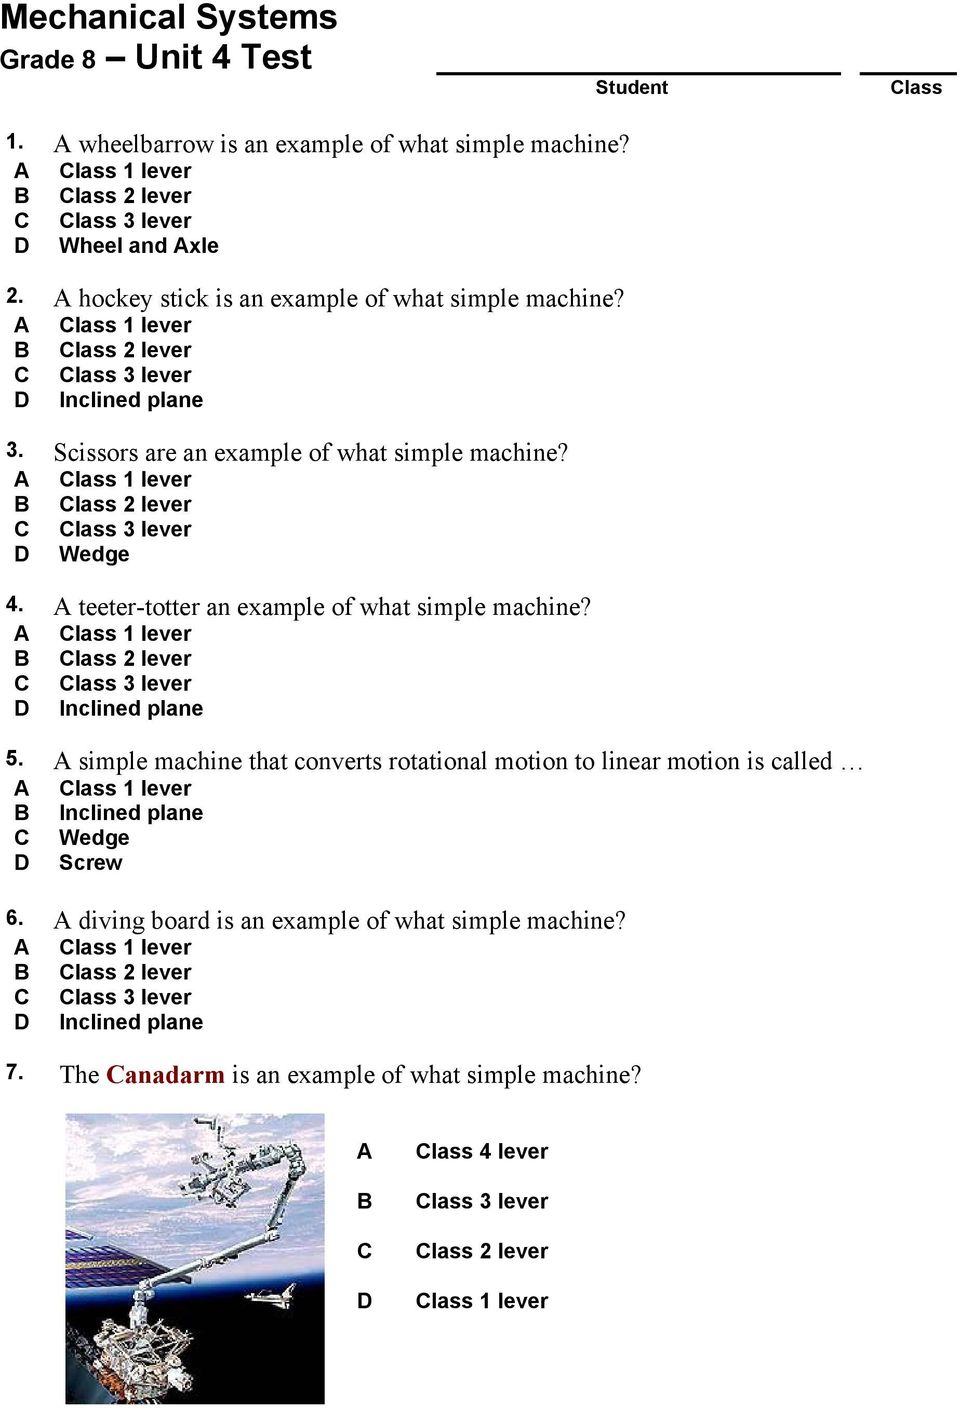 medium resolution of Mechanical Systems. Grade 8 Unit 4 Test. 1. A wheelbarrow is an example of  what simple machine? Class 1 lever. Class 2 lever. - PDF Free Download